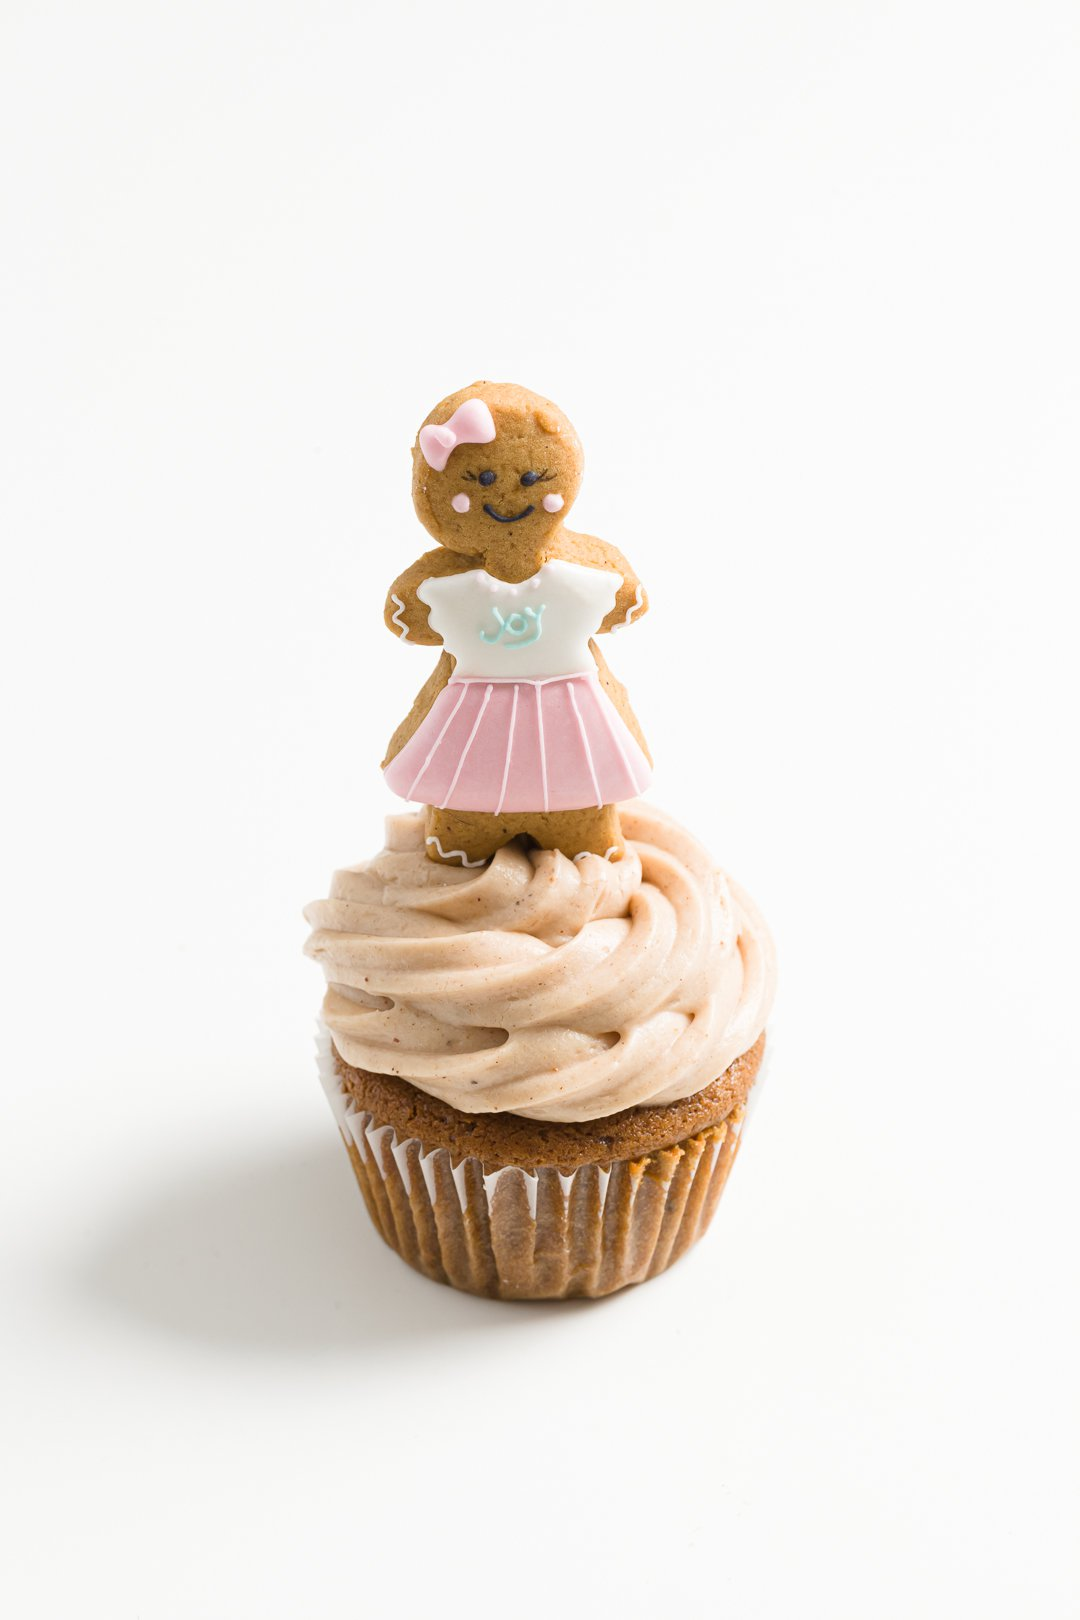 a gingerbread cupcake with a gingerbread man on top